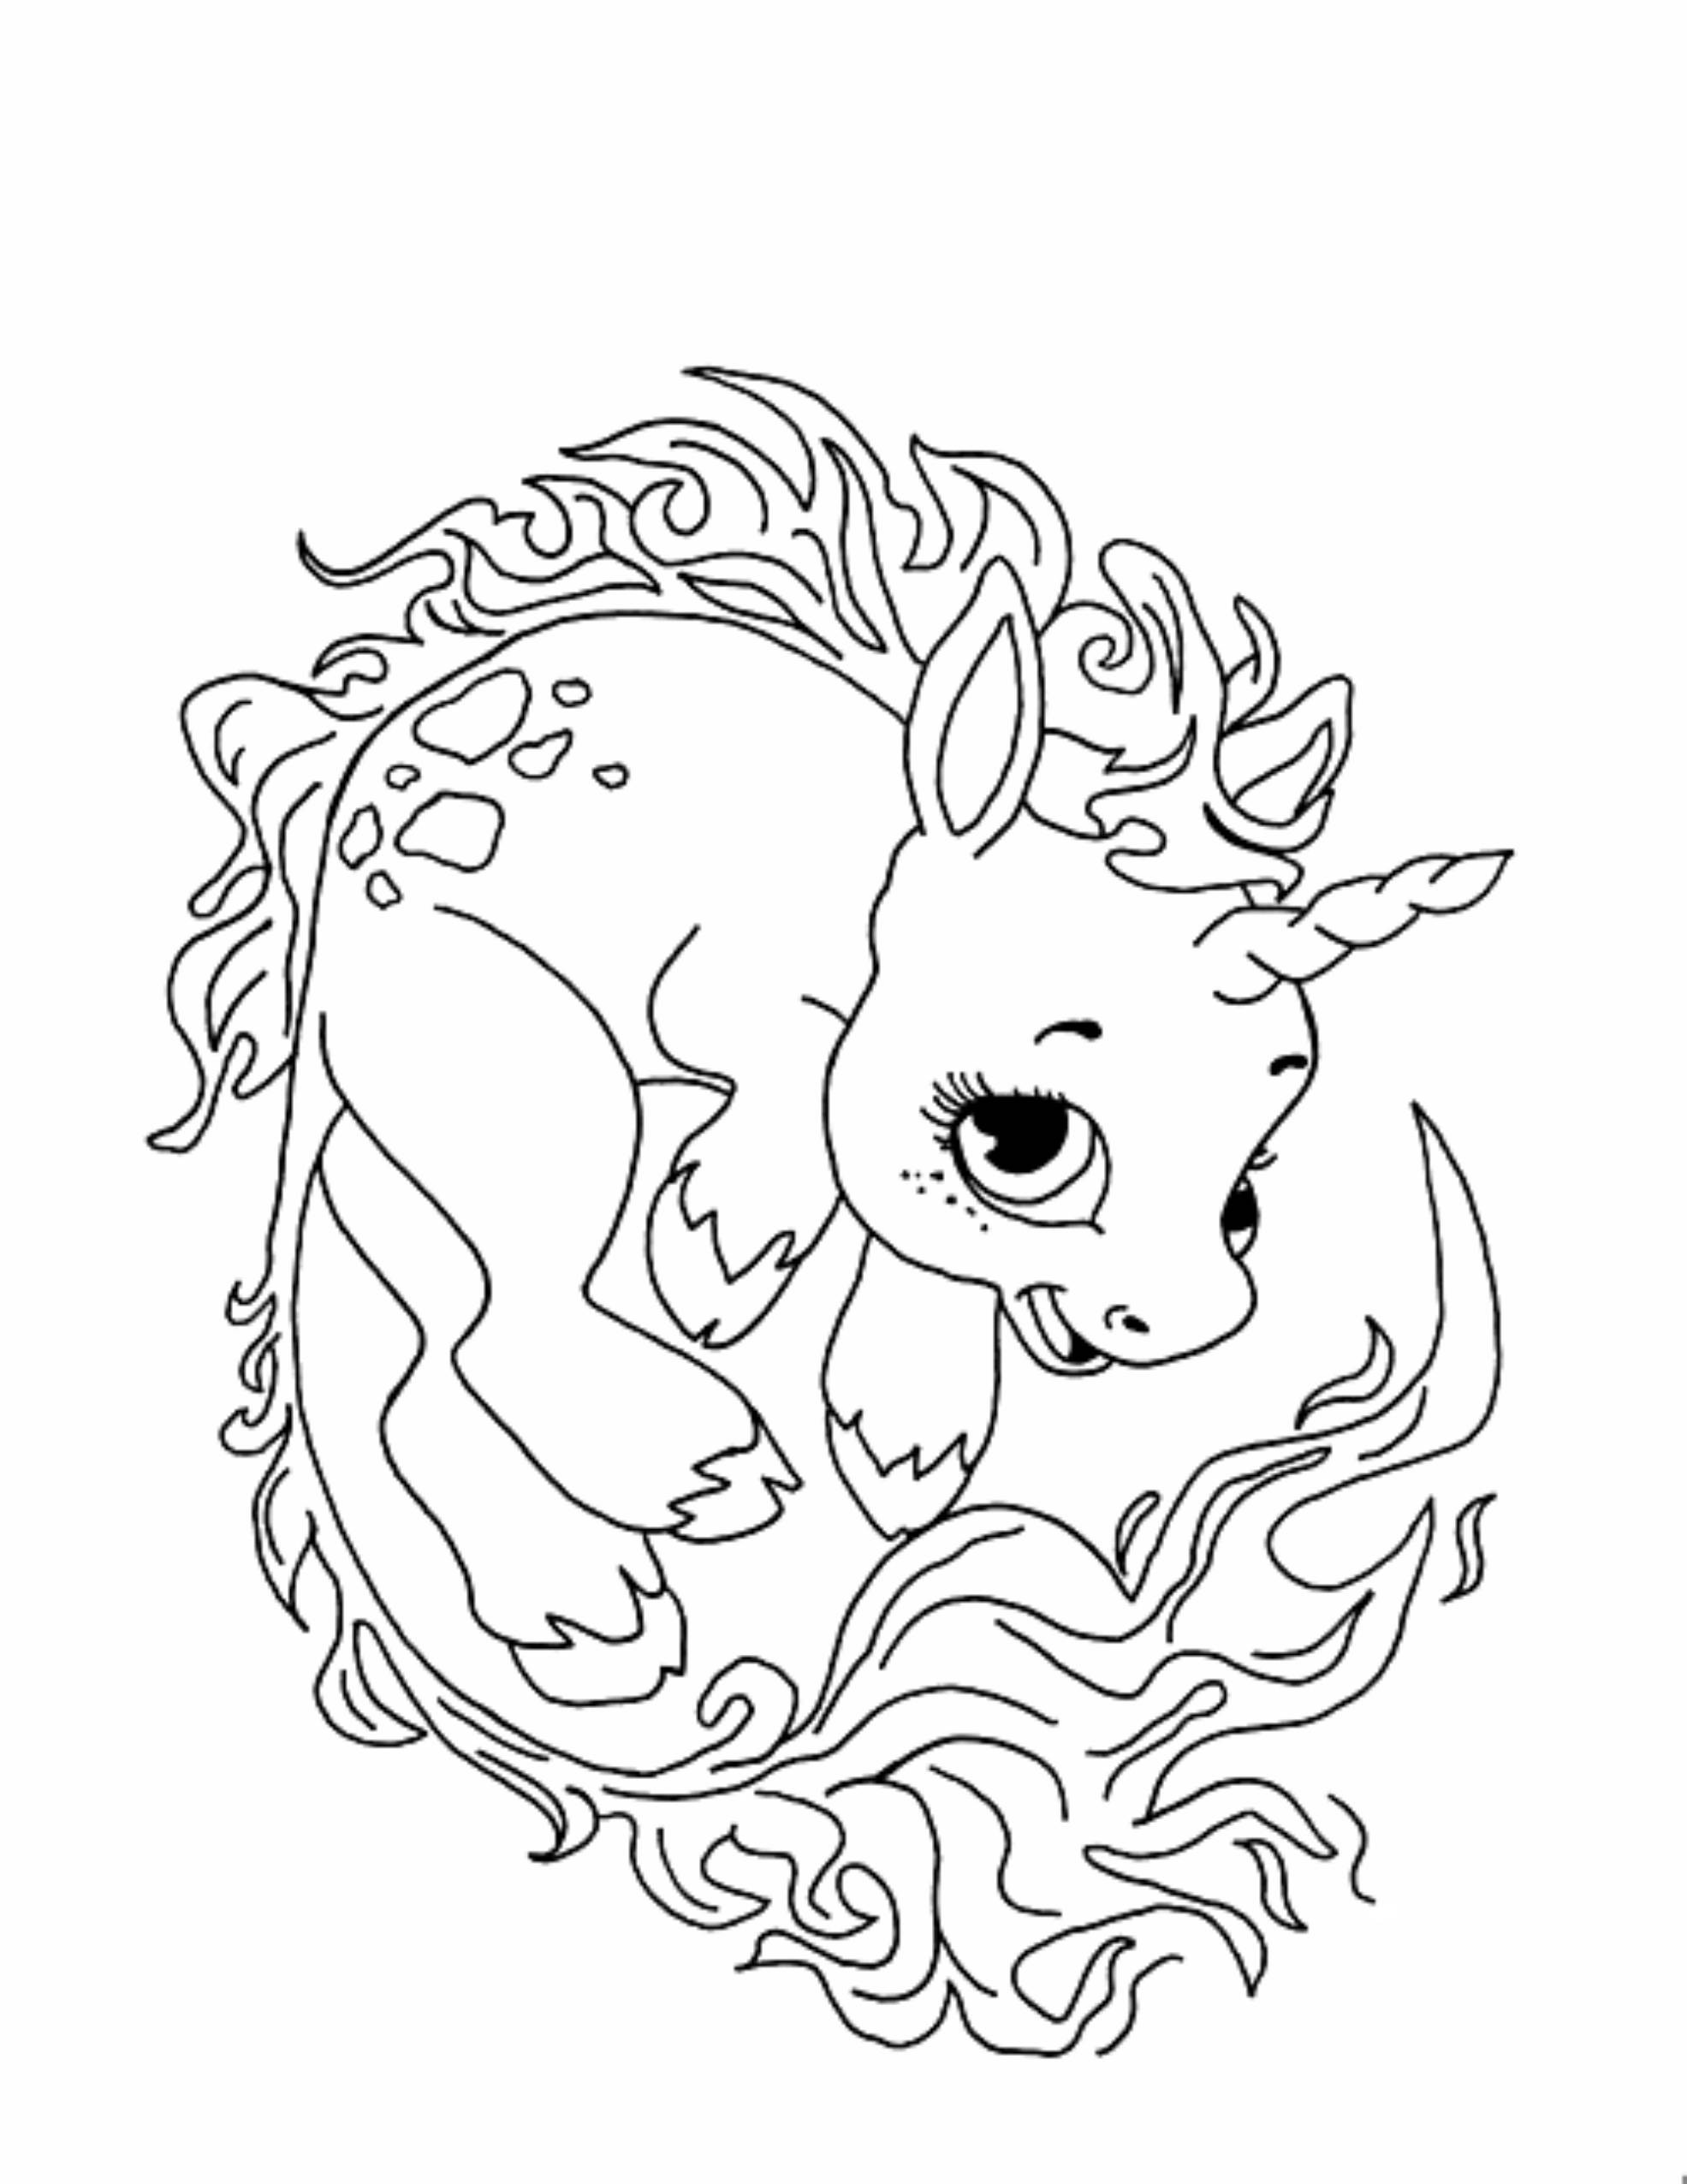 Best ideas about Coloring Pages For Kids To Print Unicorn . Save or Pin Print & Download Unicorn Coloring Pages for Children Now.